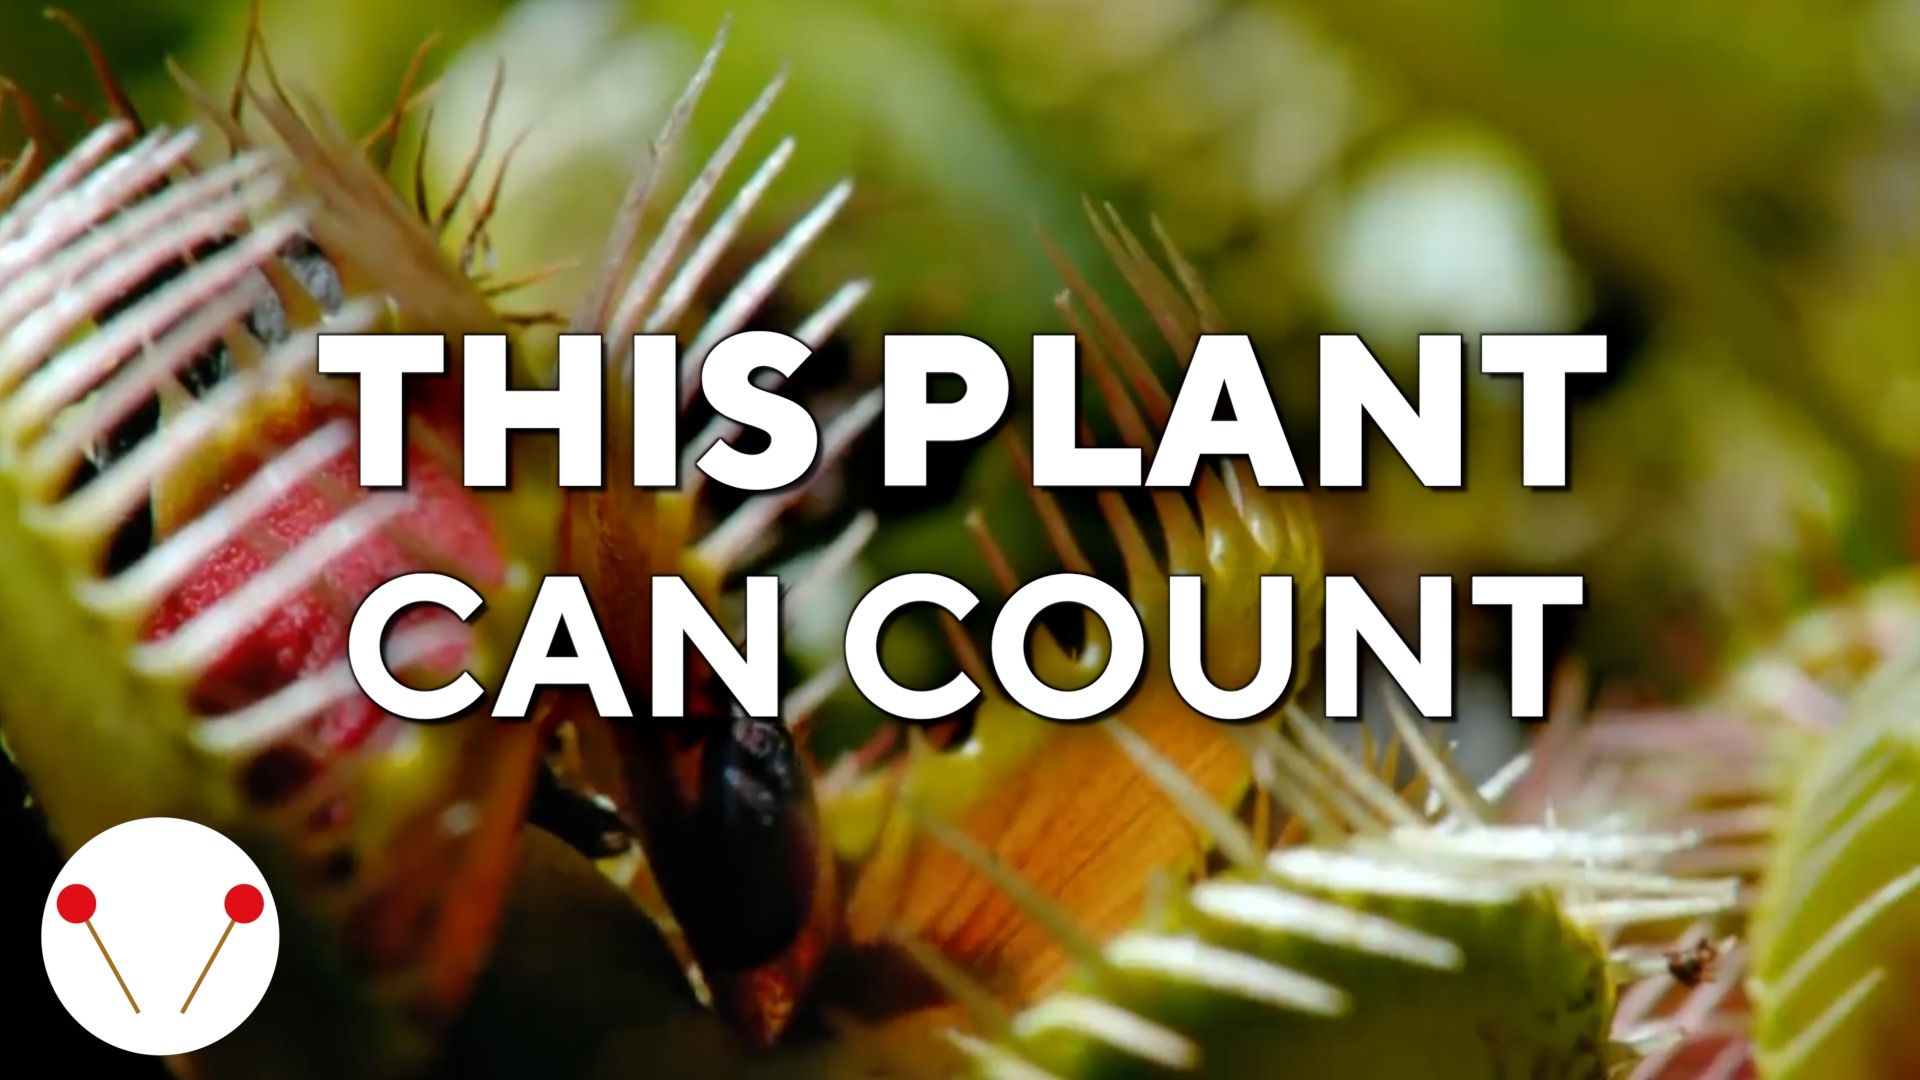 The plant that can count